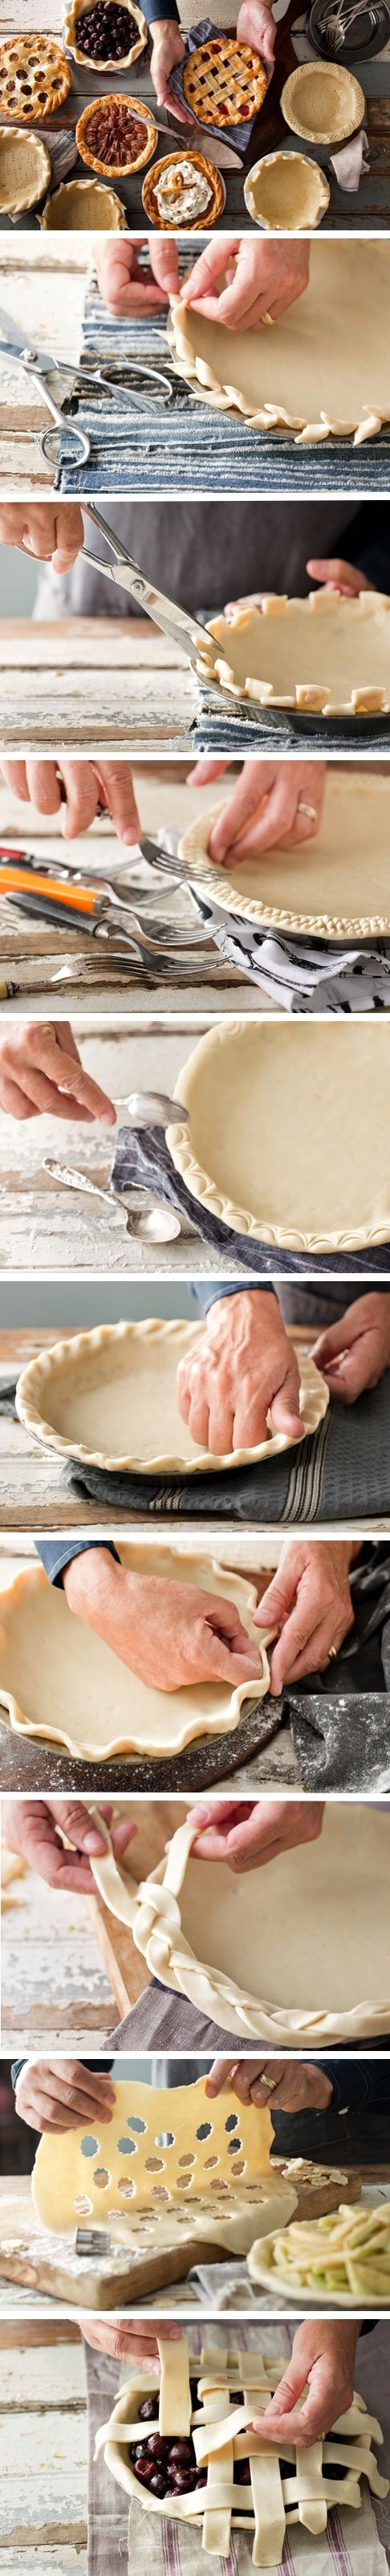 Creative Crust How-To's//